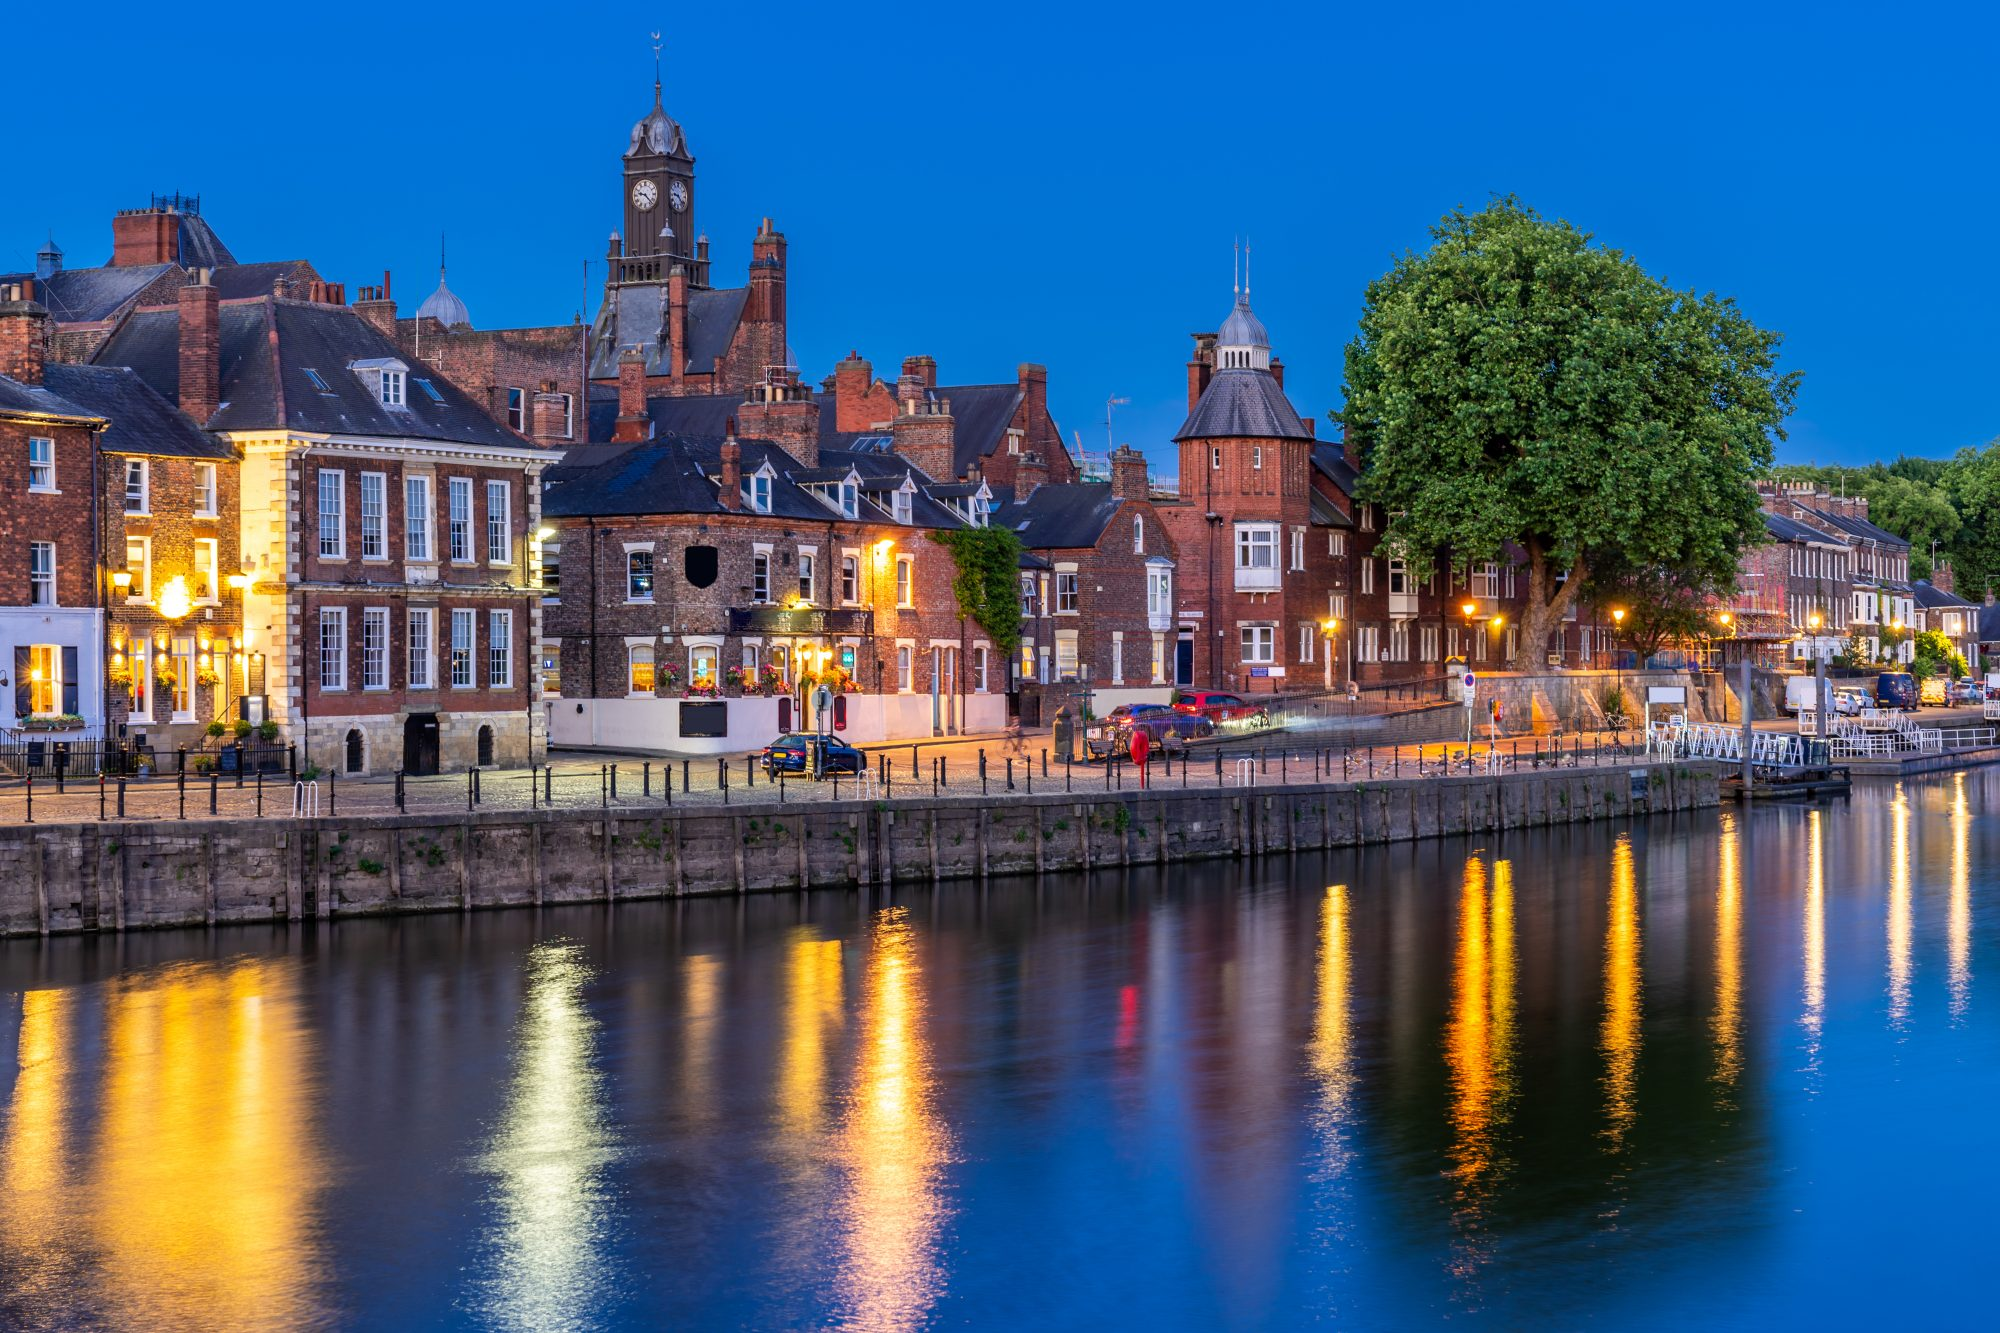 Dusk image of old brick buildings along the River Ouse in York